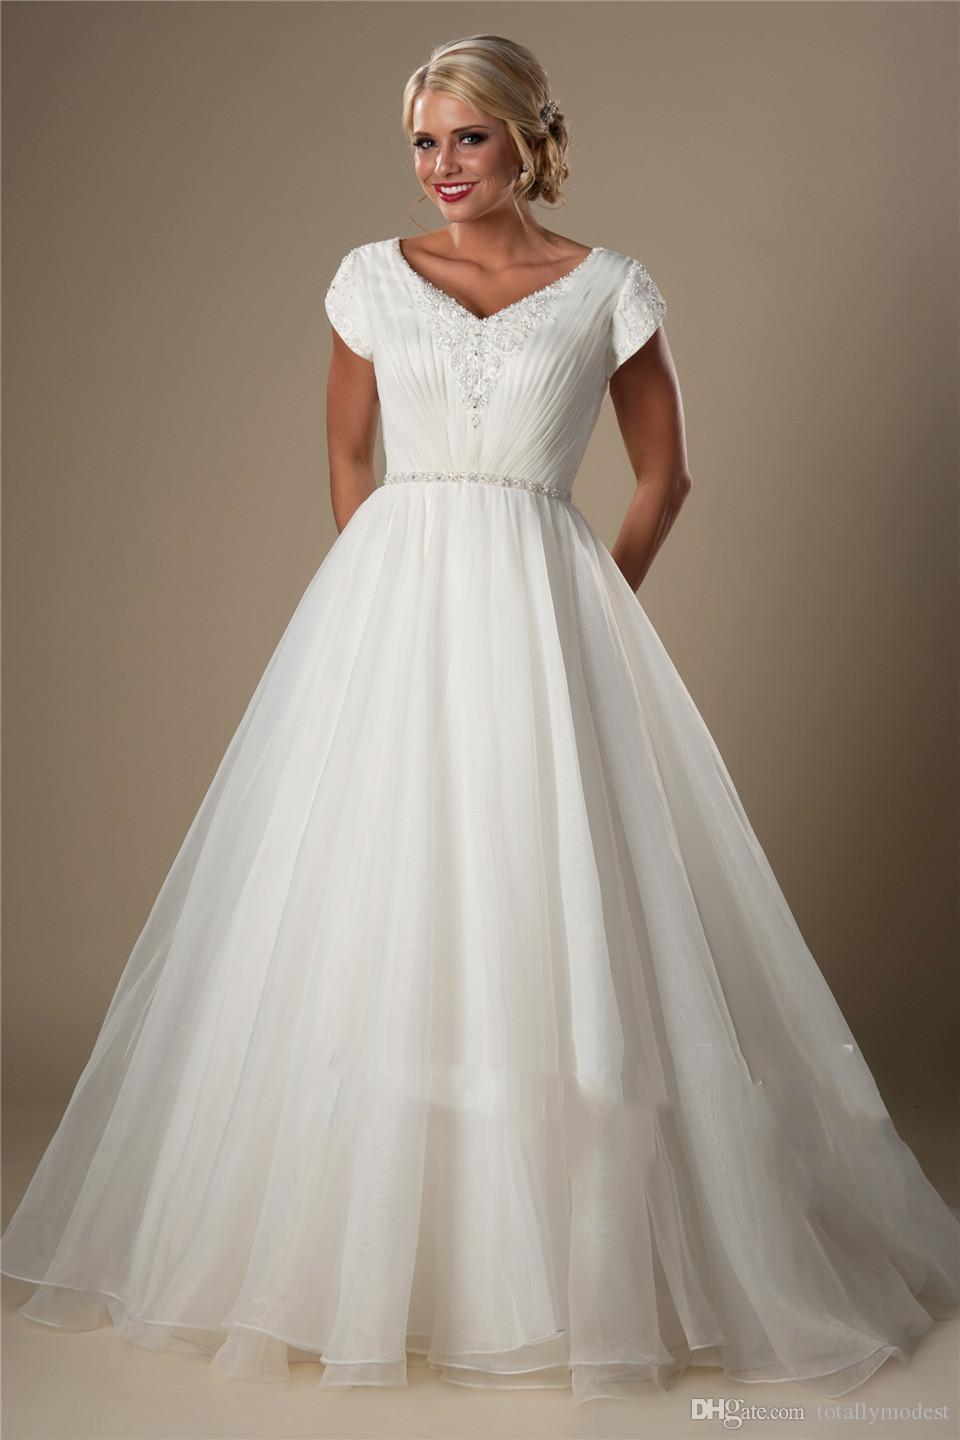 Simple A-line Organza Modest Wedding Dresses With Short Sleeves Cap Sleeves Temple Bridal Gowns V Neck Beaded Pleated Wedding Gowns New